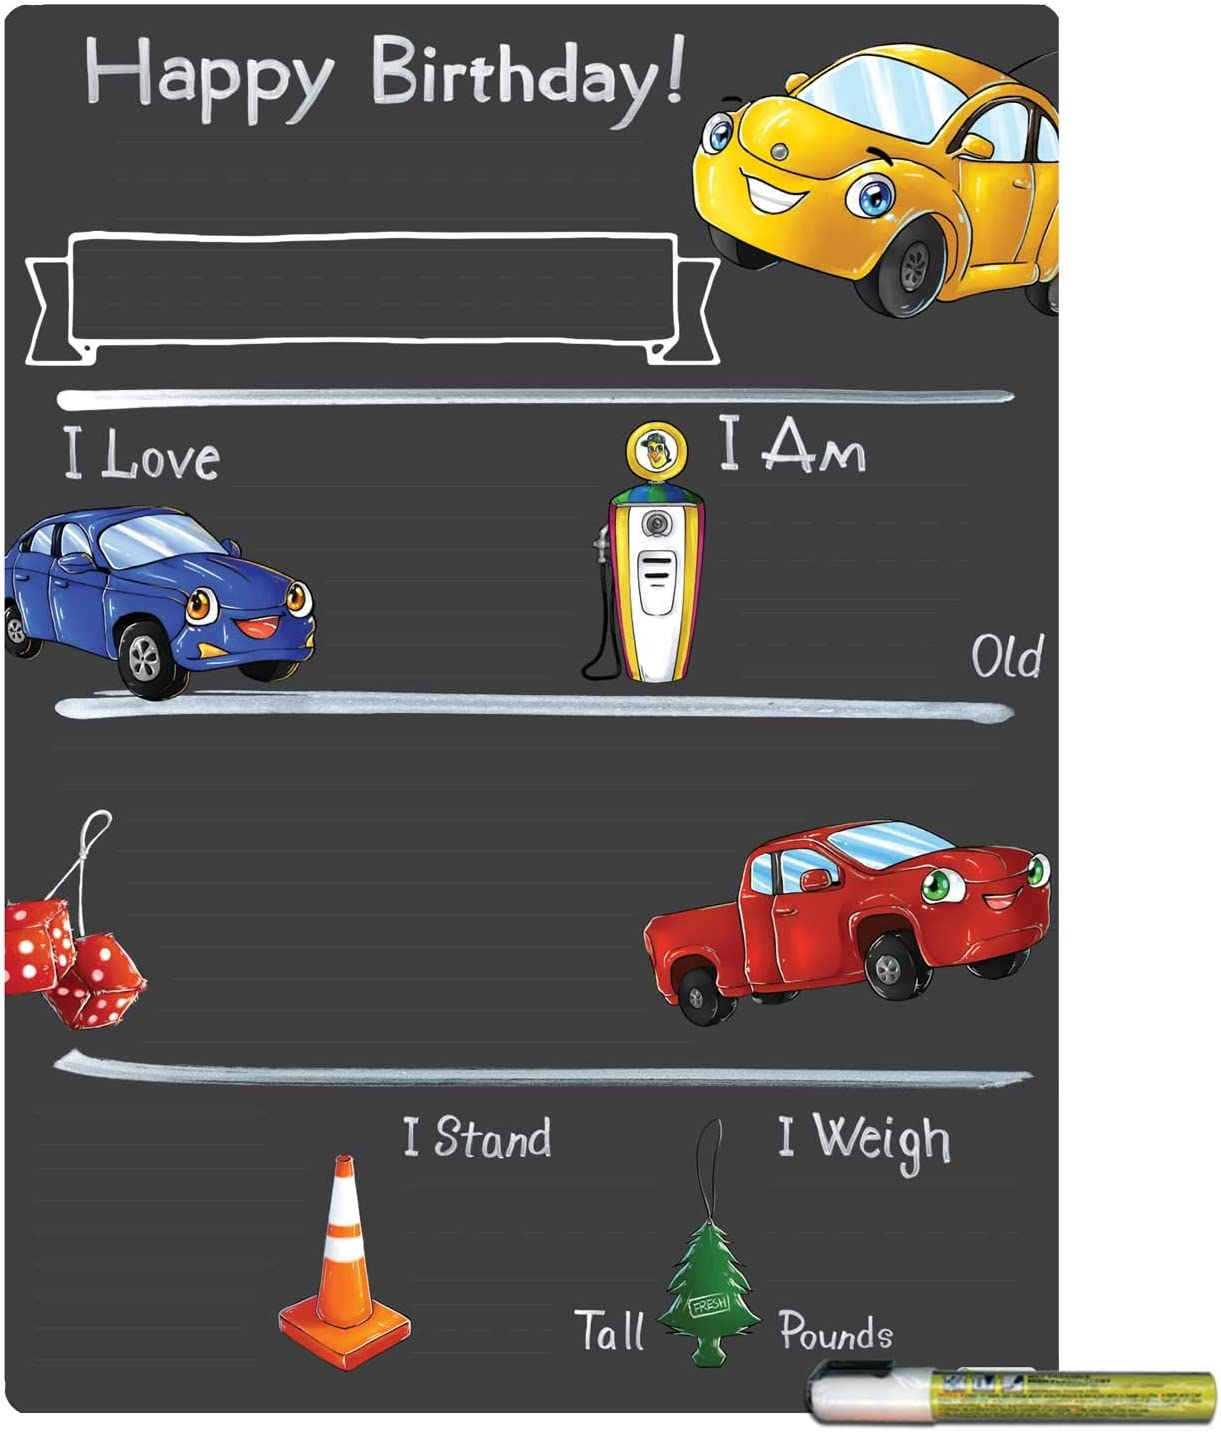 Cohas Low price Birthday Milestone Board Minneapolis Mall with Re Theme and Trucks Cars